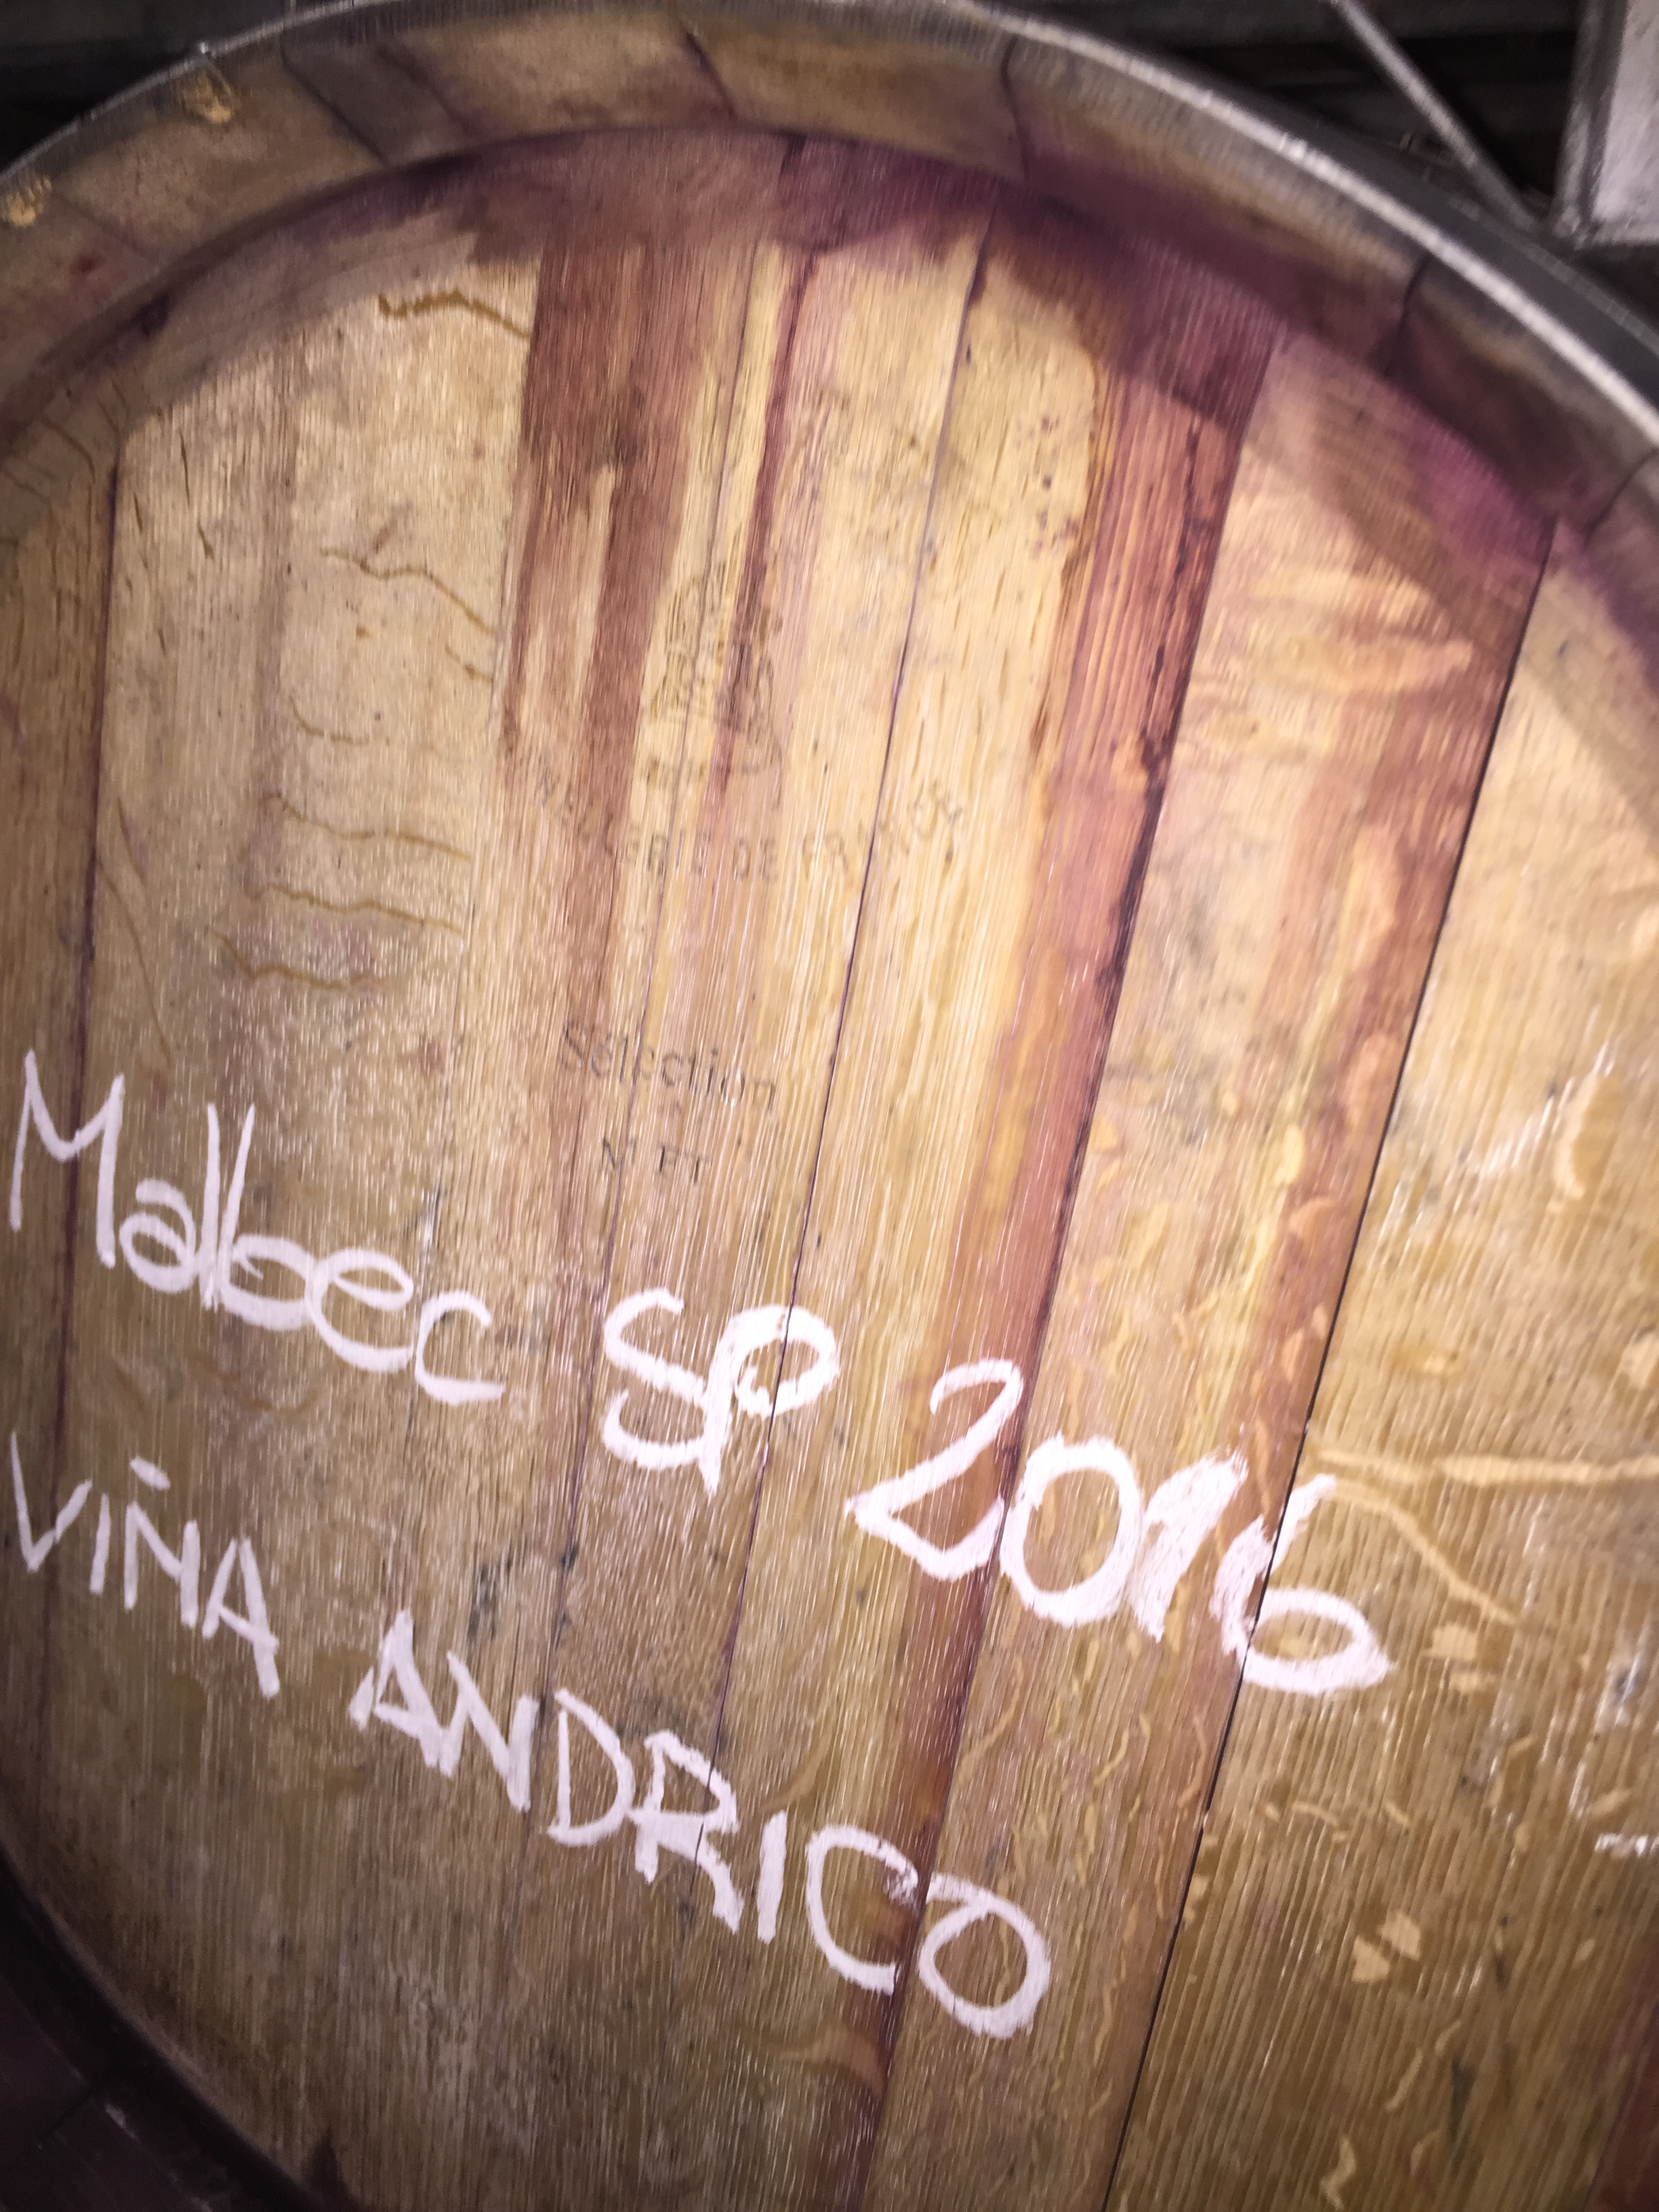 We age our wine in French oak barrels between 24 - 30 months. Vina Andrico vineyard in Mendoza, Argentina.